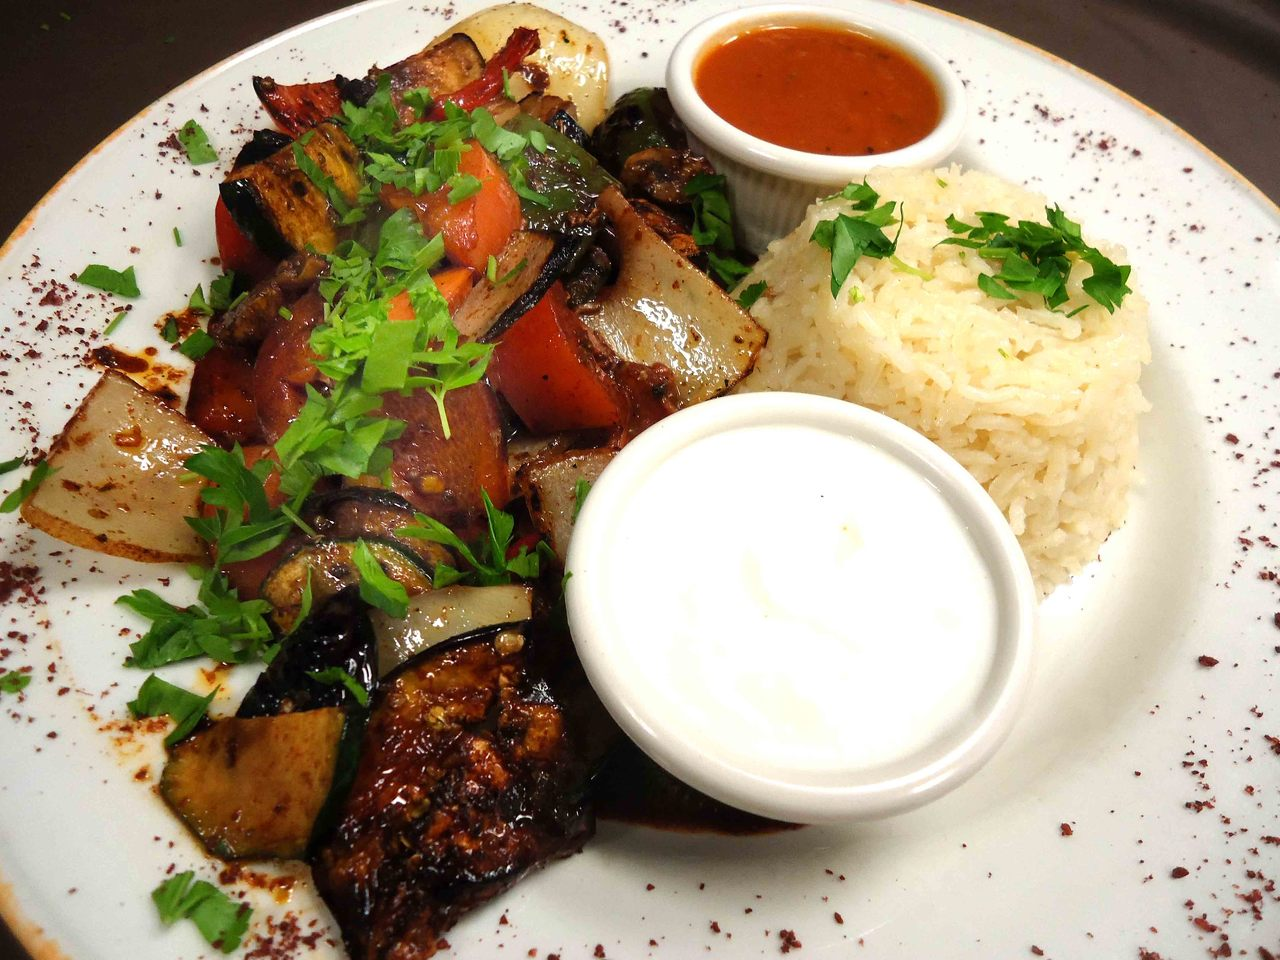 Mix Vegetable Grill